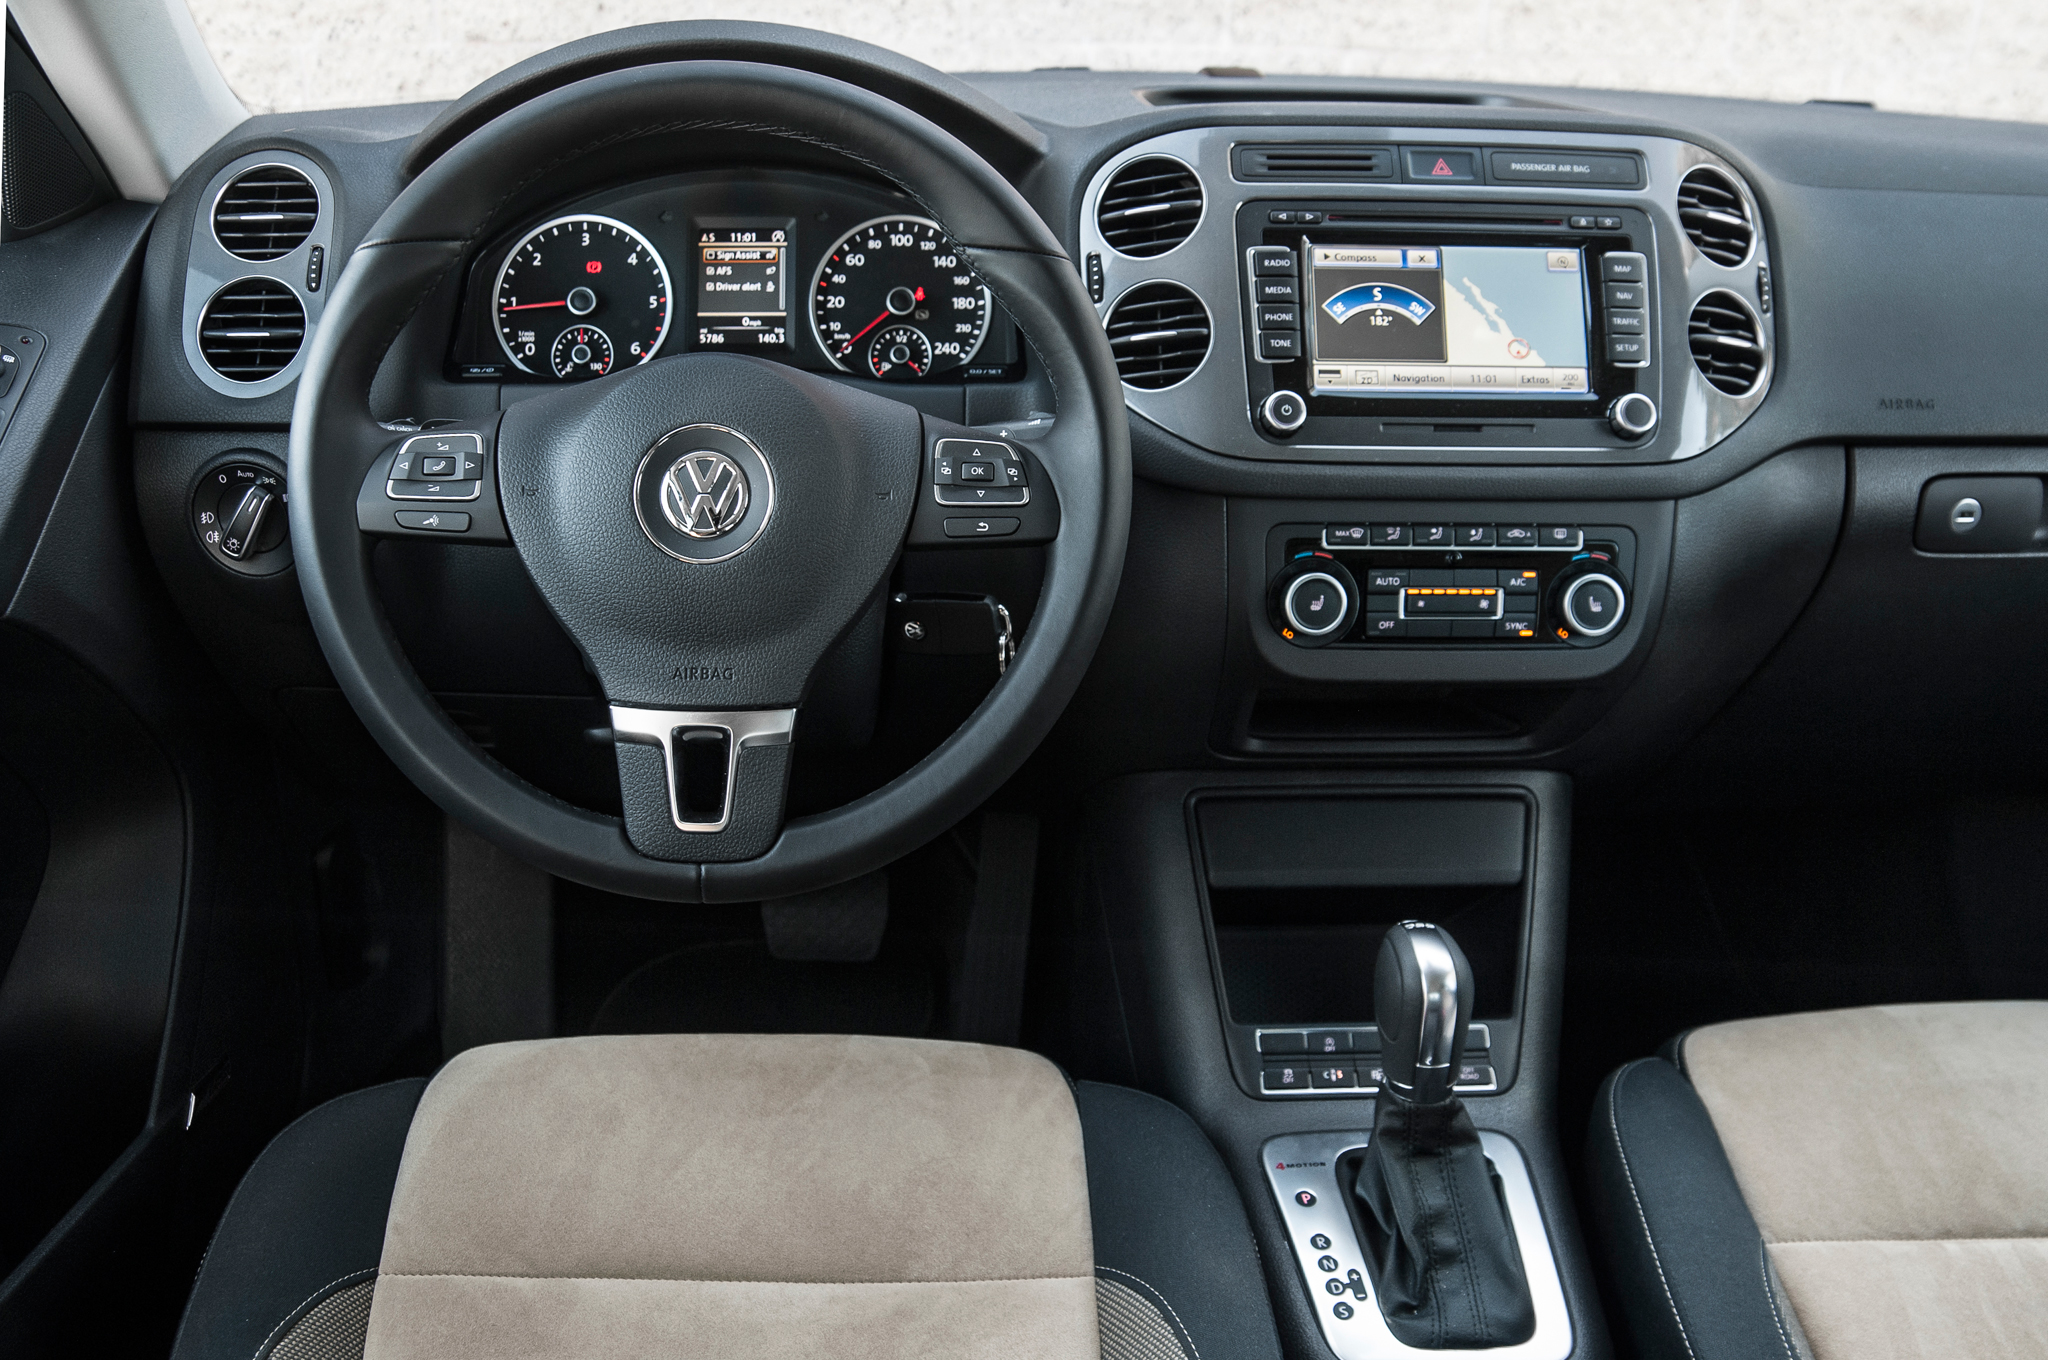 http://bestcarmag.com/sites/default/files/2014-volkswagen-tiguan-1315266-4773435.jpg